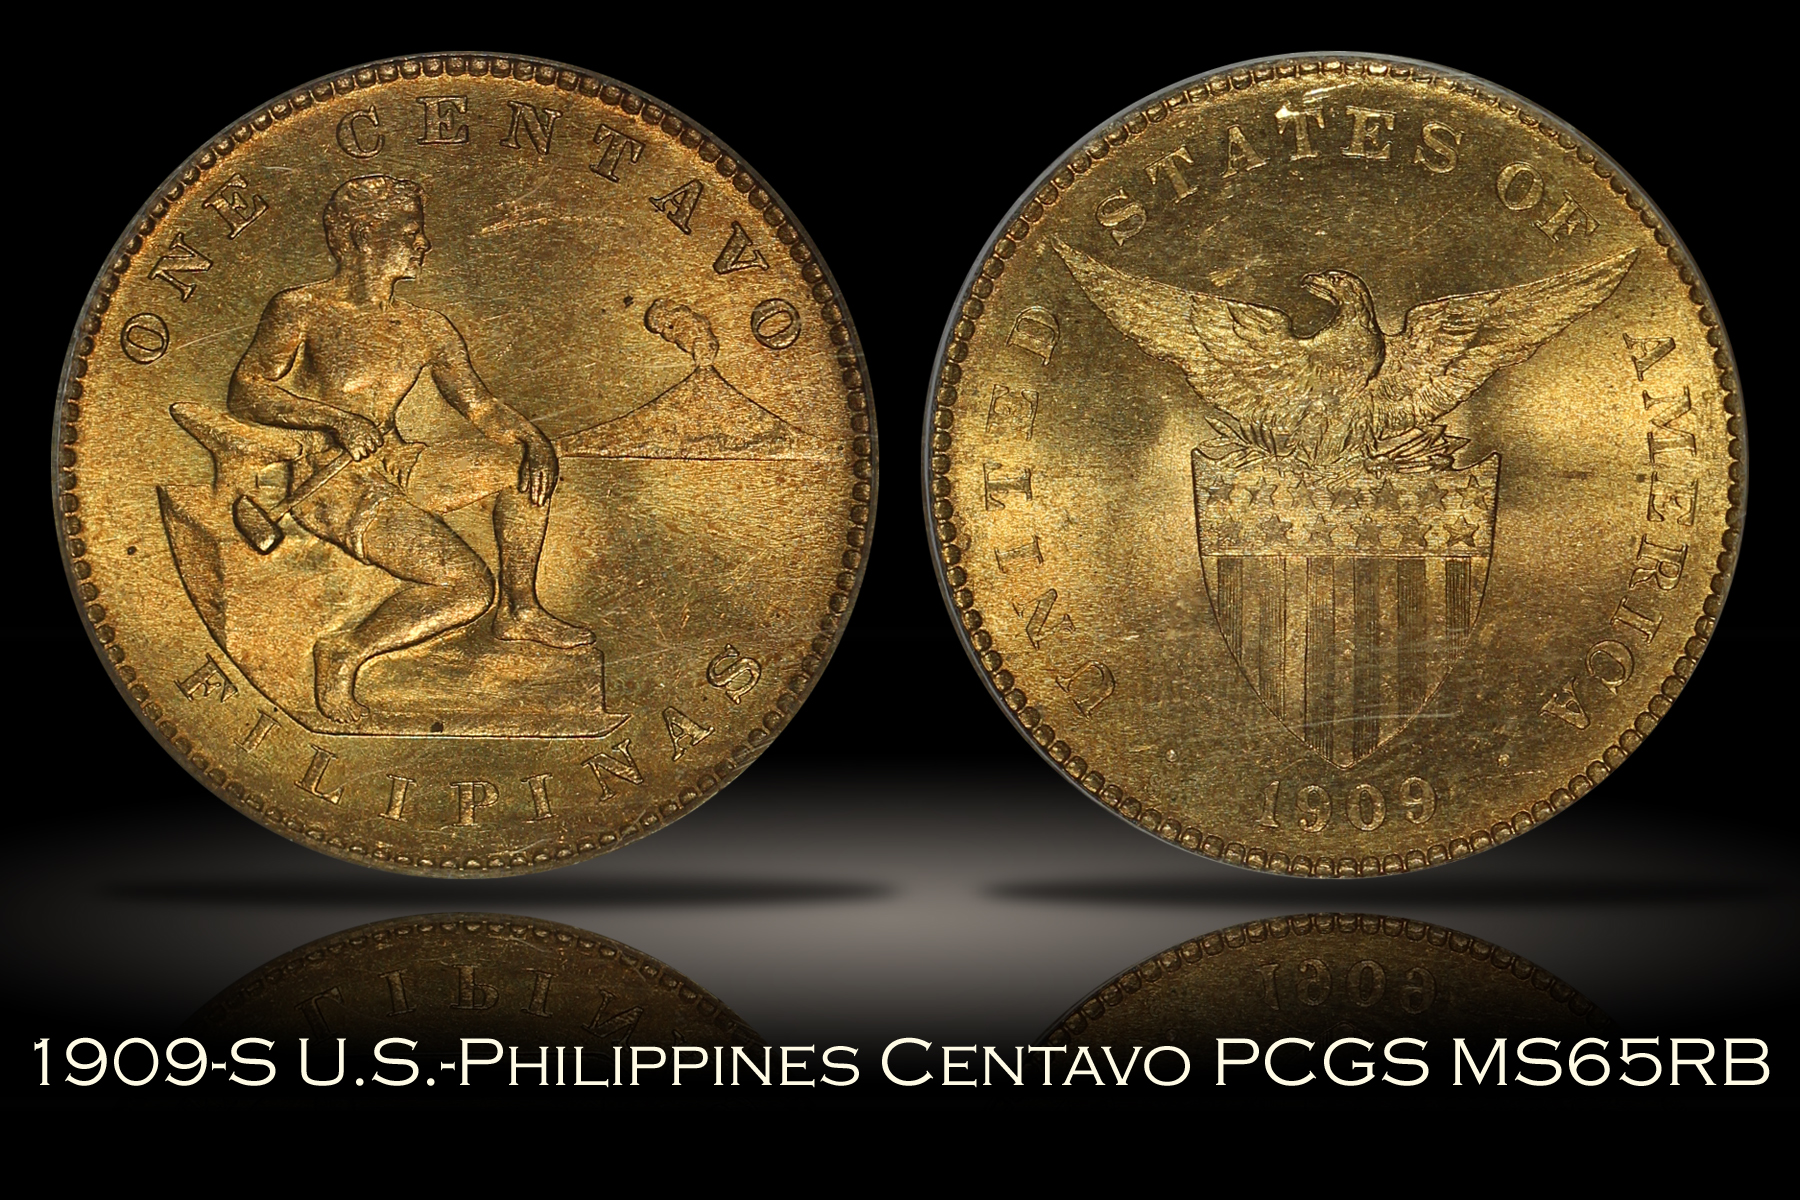 1909-S U.S.-Philippines One Centavo PCGS MS65RB